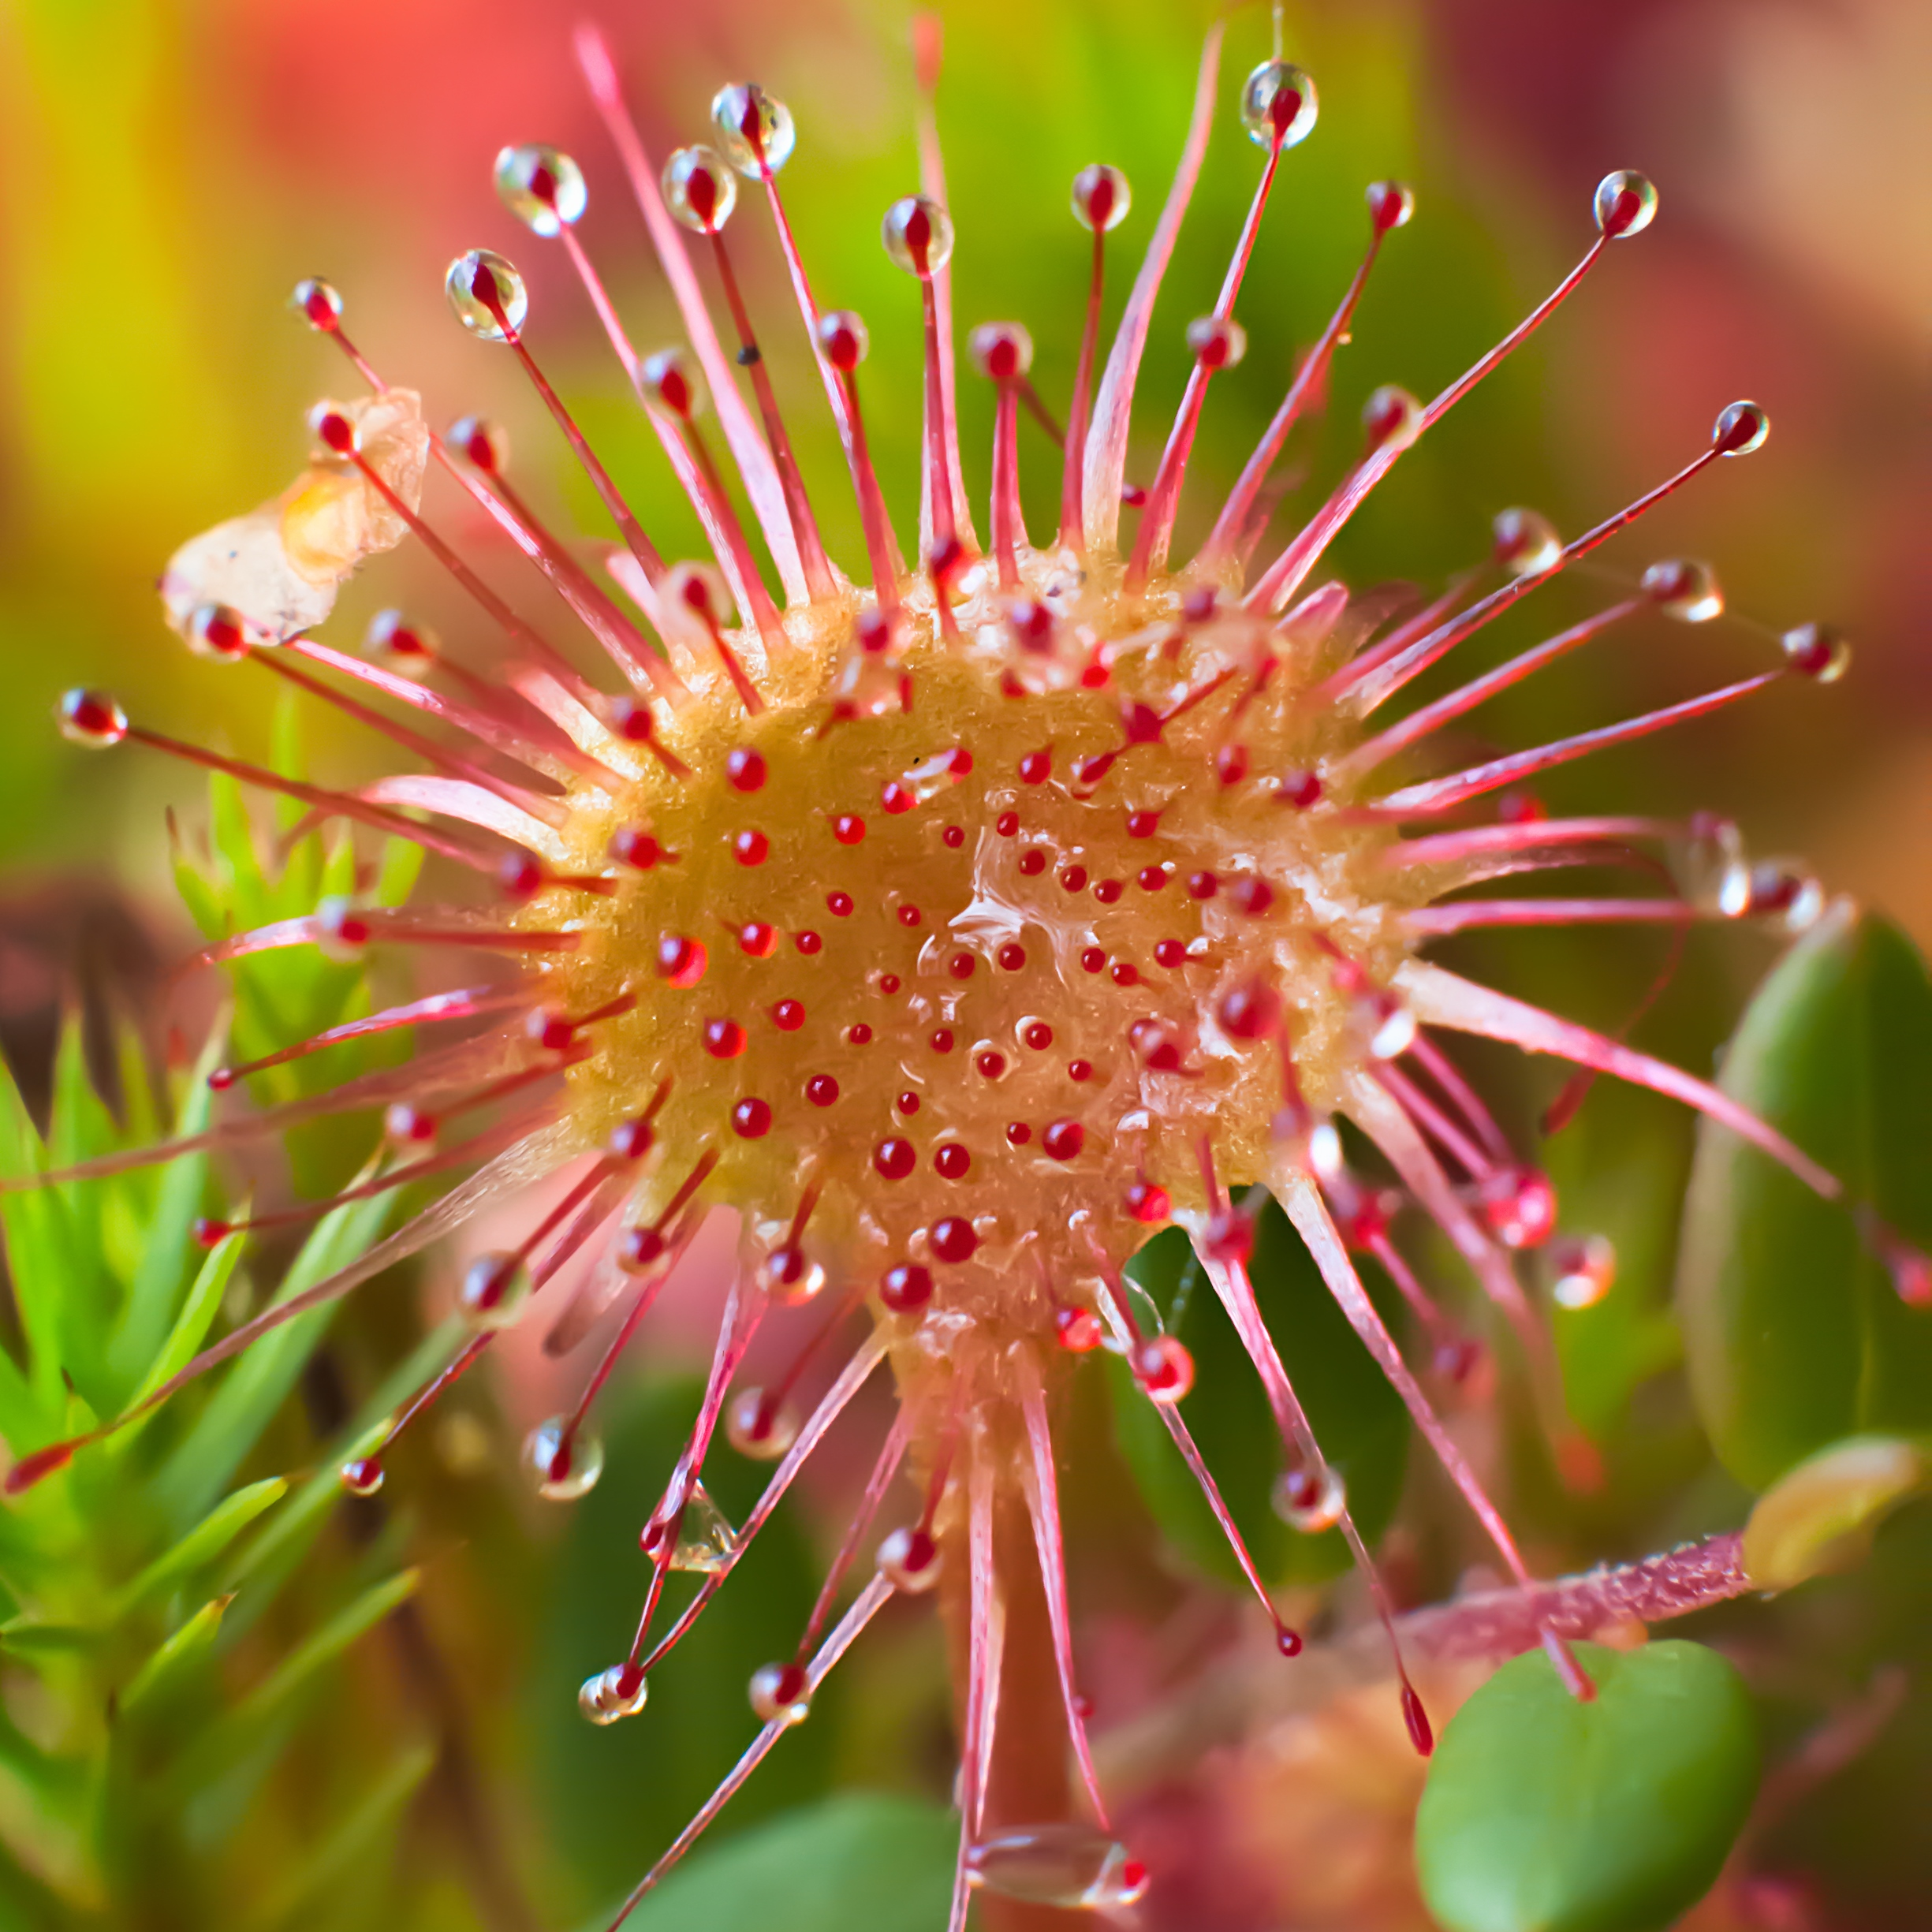 Round-leaved sundew (Drosera rotundifolia) with sticky red round leaves.